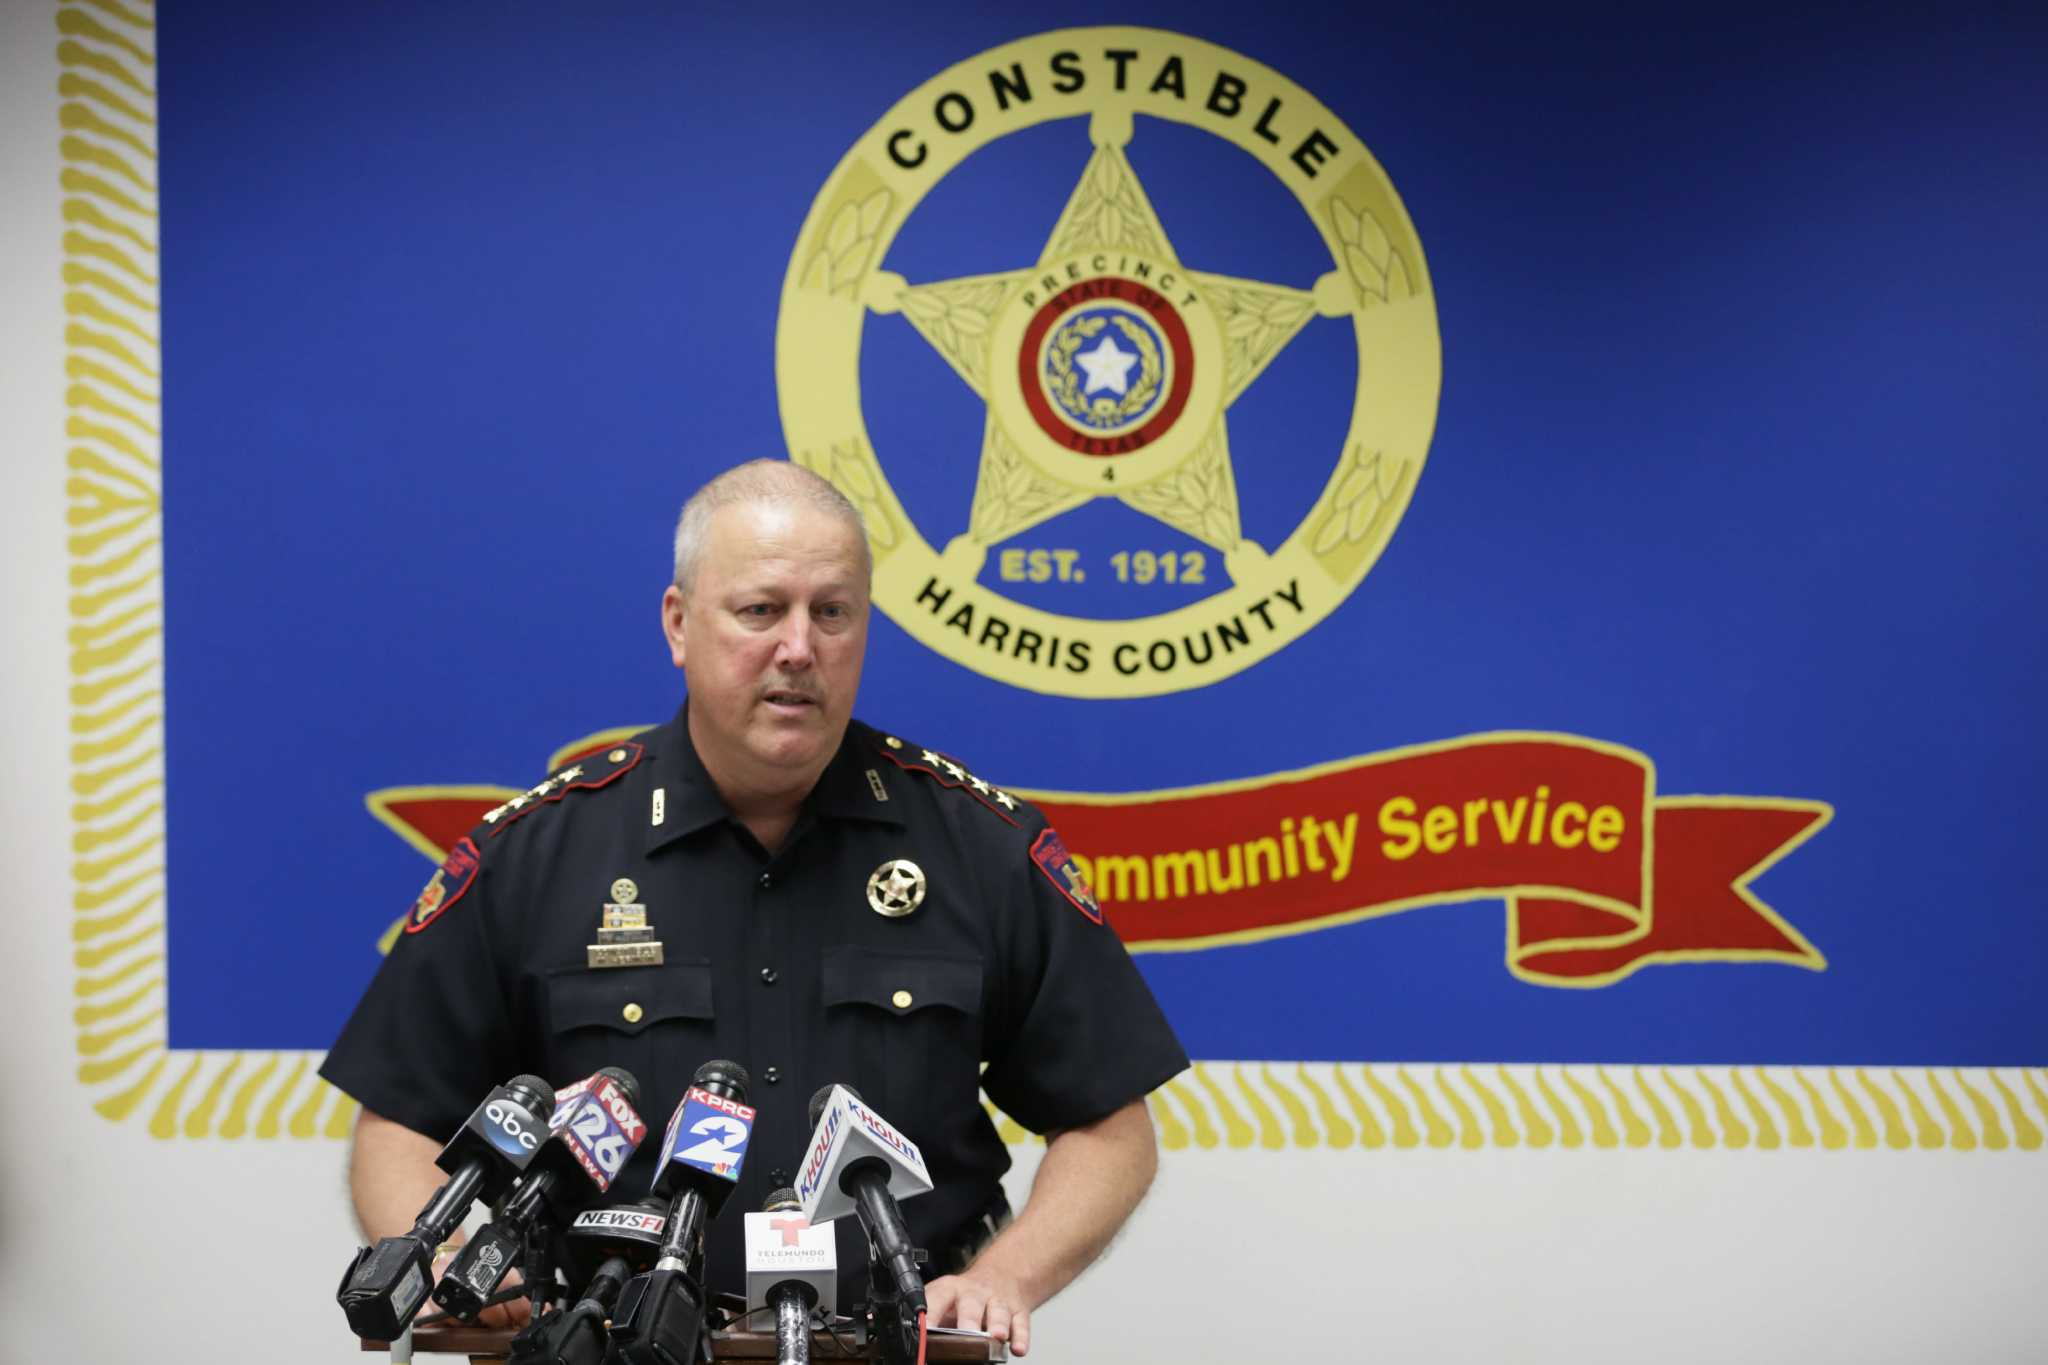 harris county constable 3 arrest record